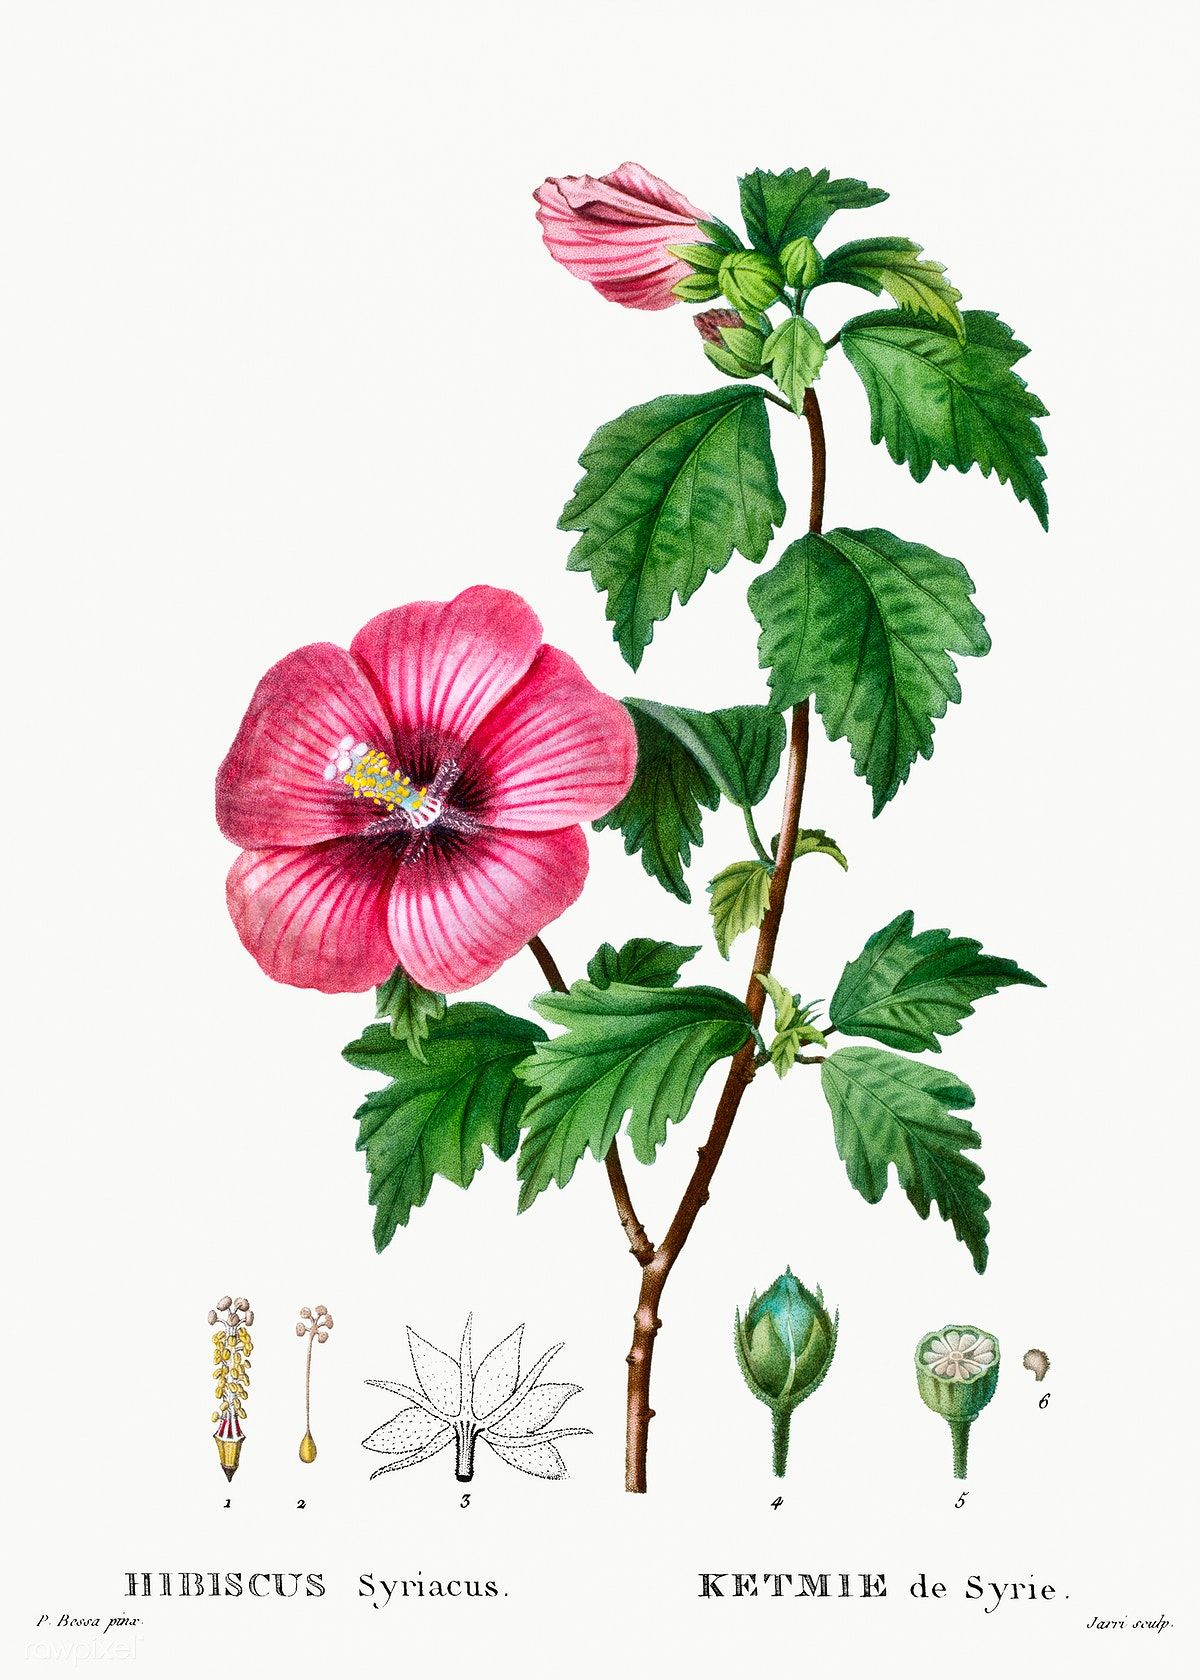 Rose of Sharon (Hibiscus syriacus) from Traité des Arbres